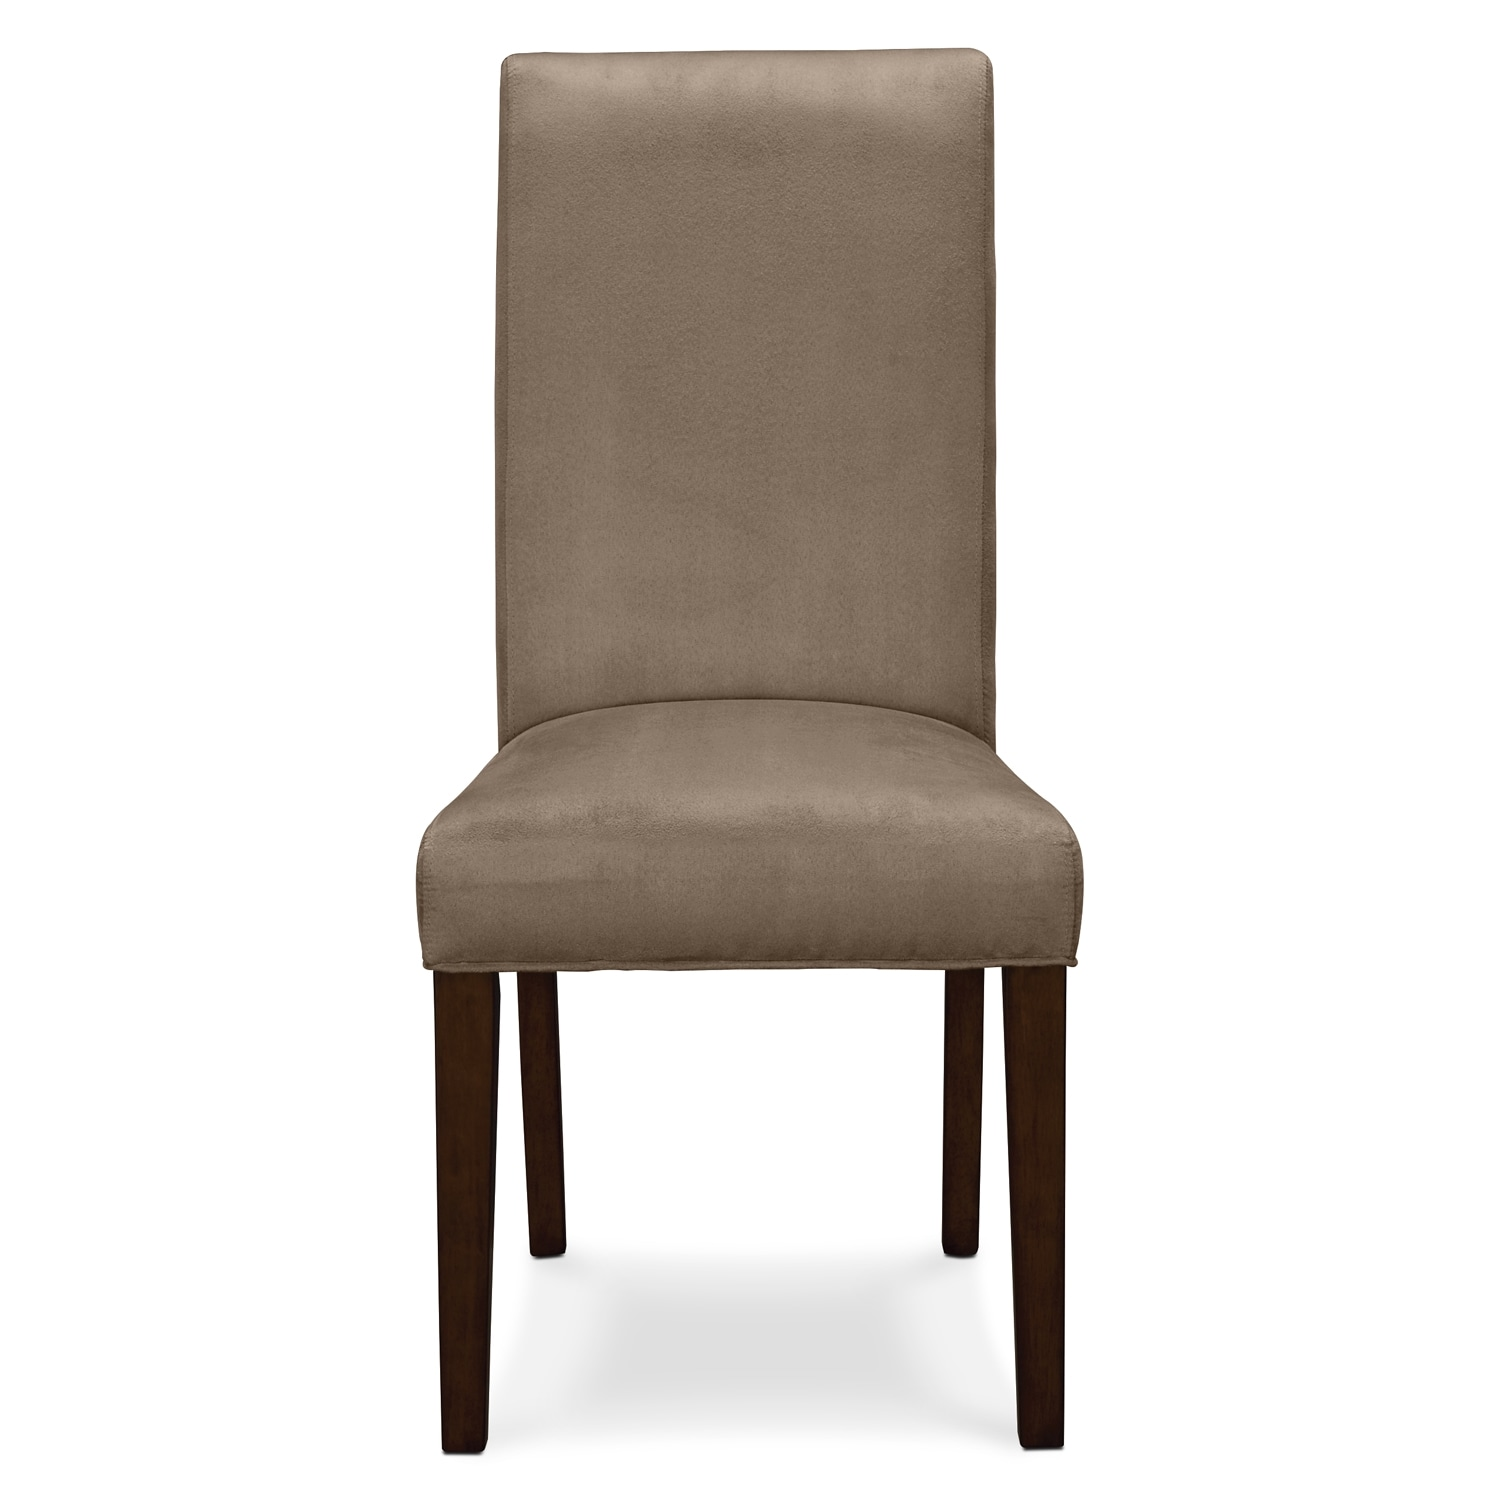 Alcove Beige Dining Room Chair